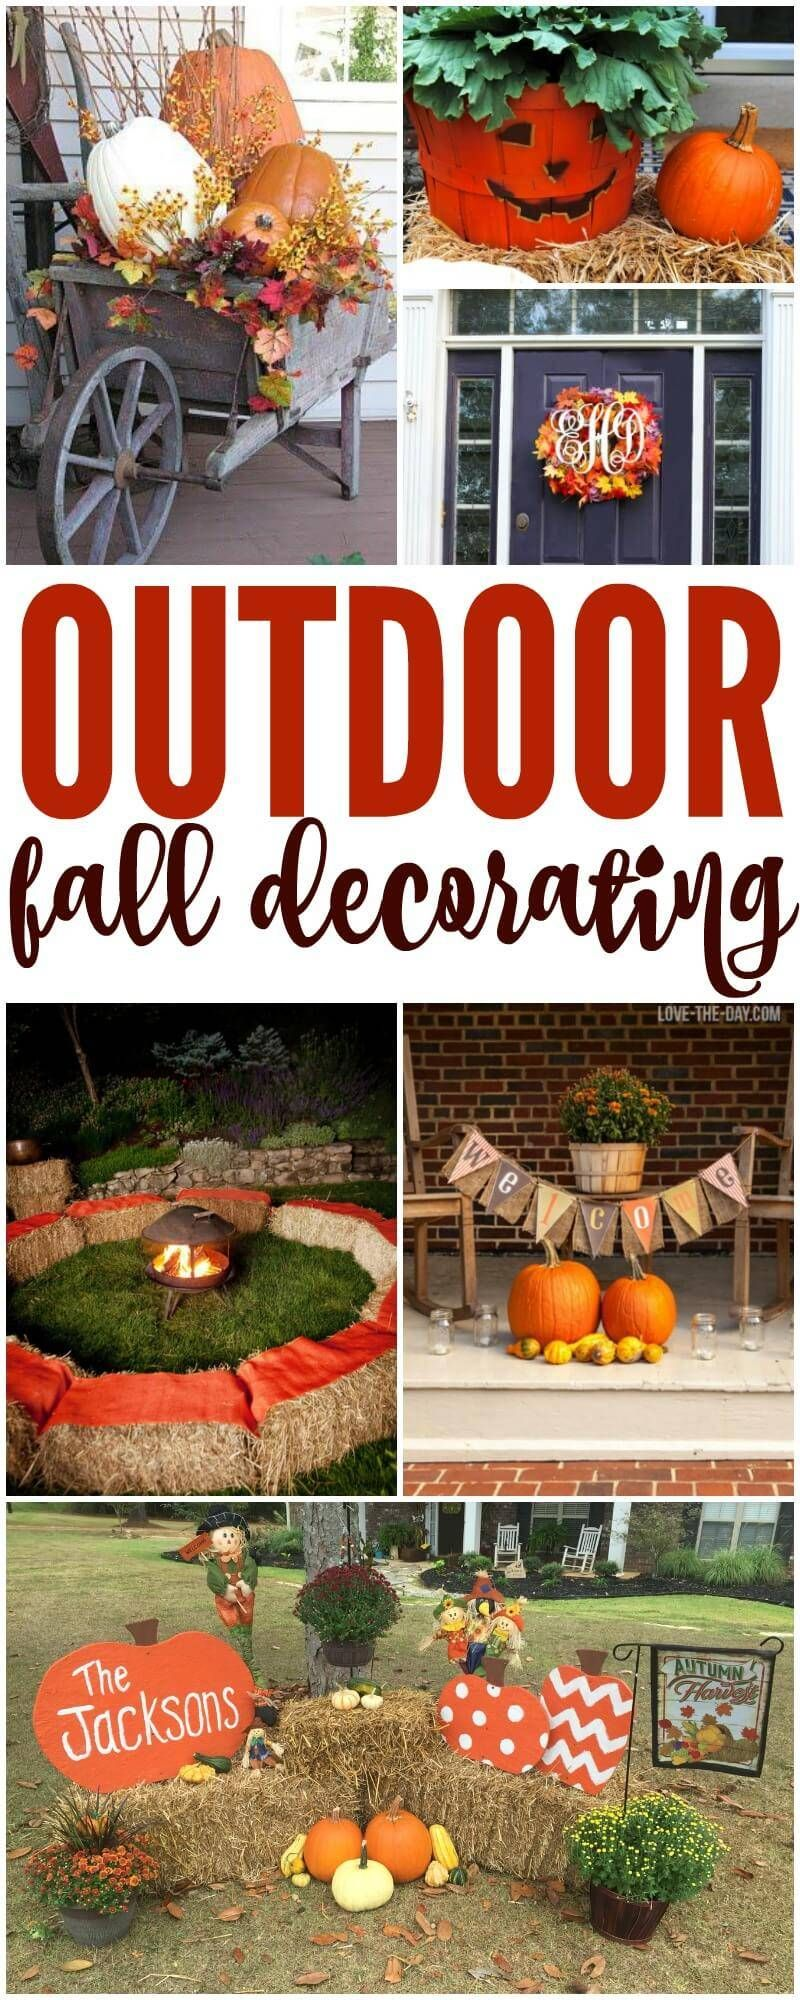 Outdoor Fall Decorations Easy Diy Outside Ideas For Decorating For Thanksgiving Halloween Or Fall Passion4savings Fall Outdoor Decor Fall Outdoor Diy Fall